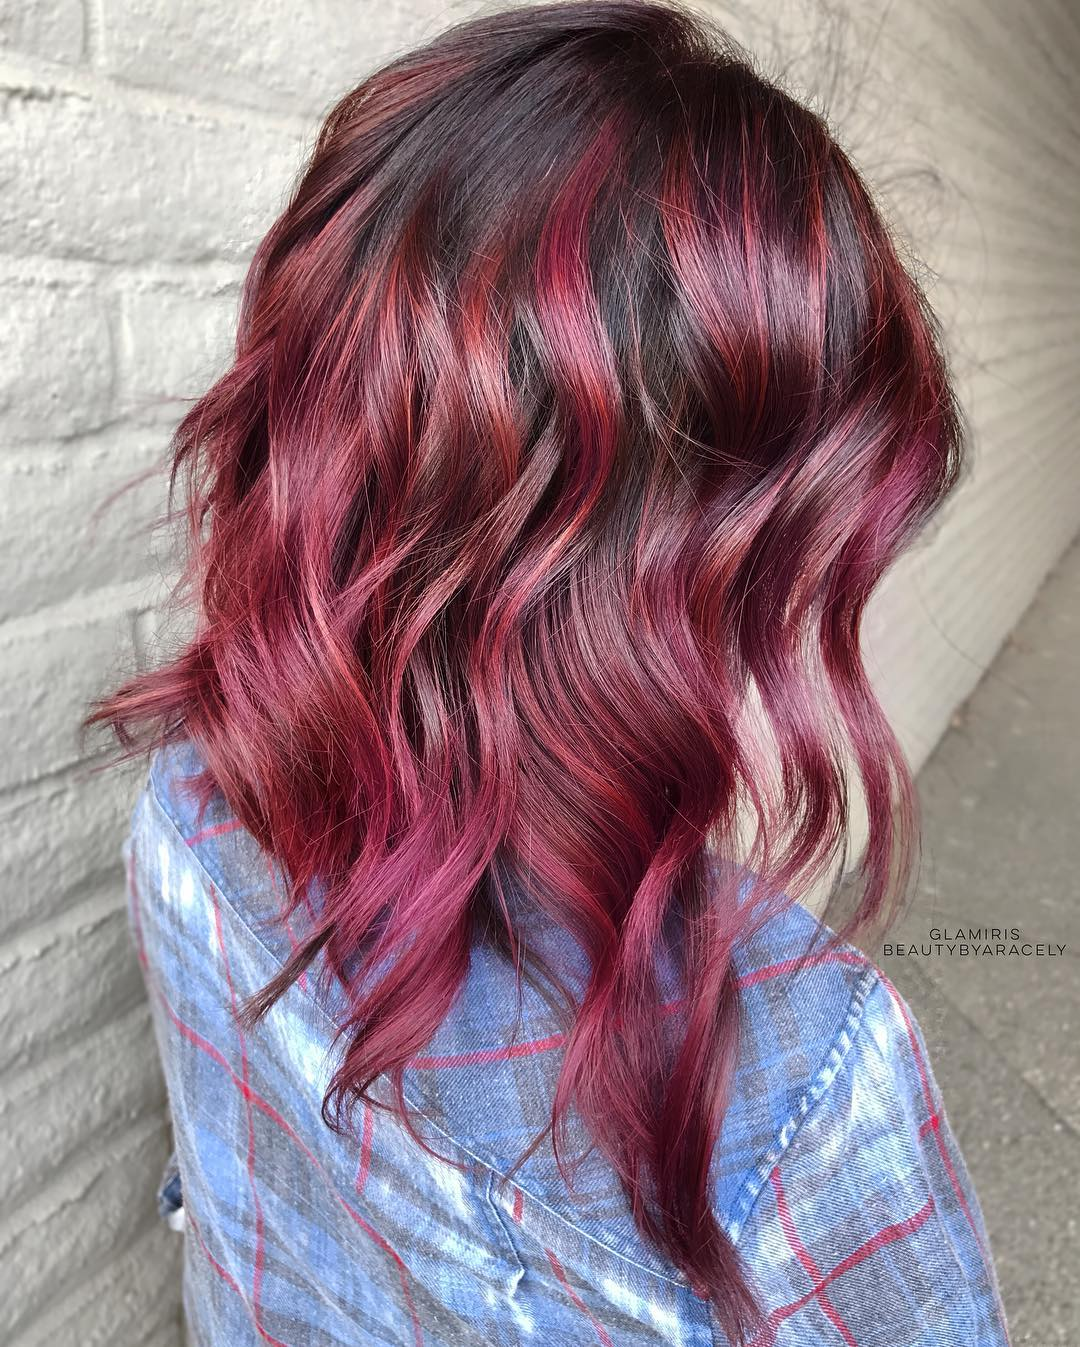 Mid-Length Hair with Bright Burgundy Balayage